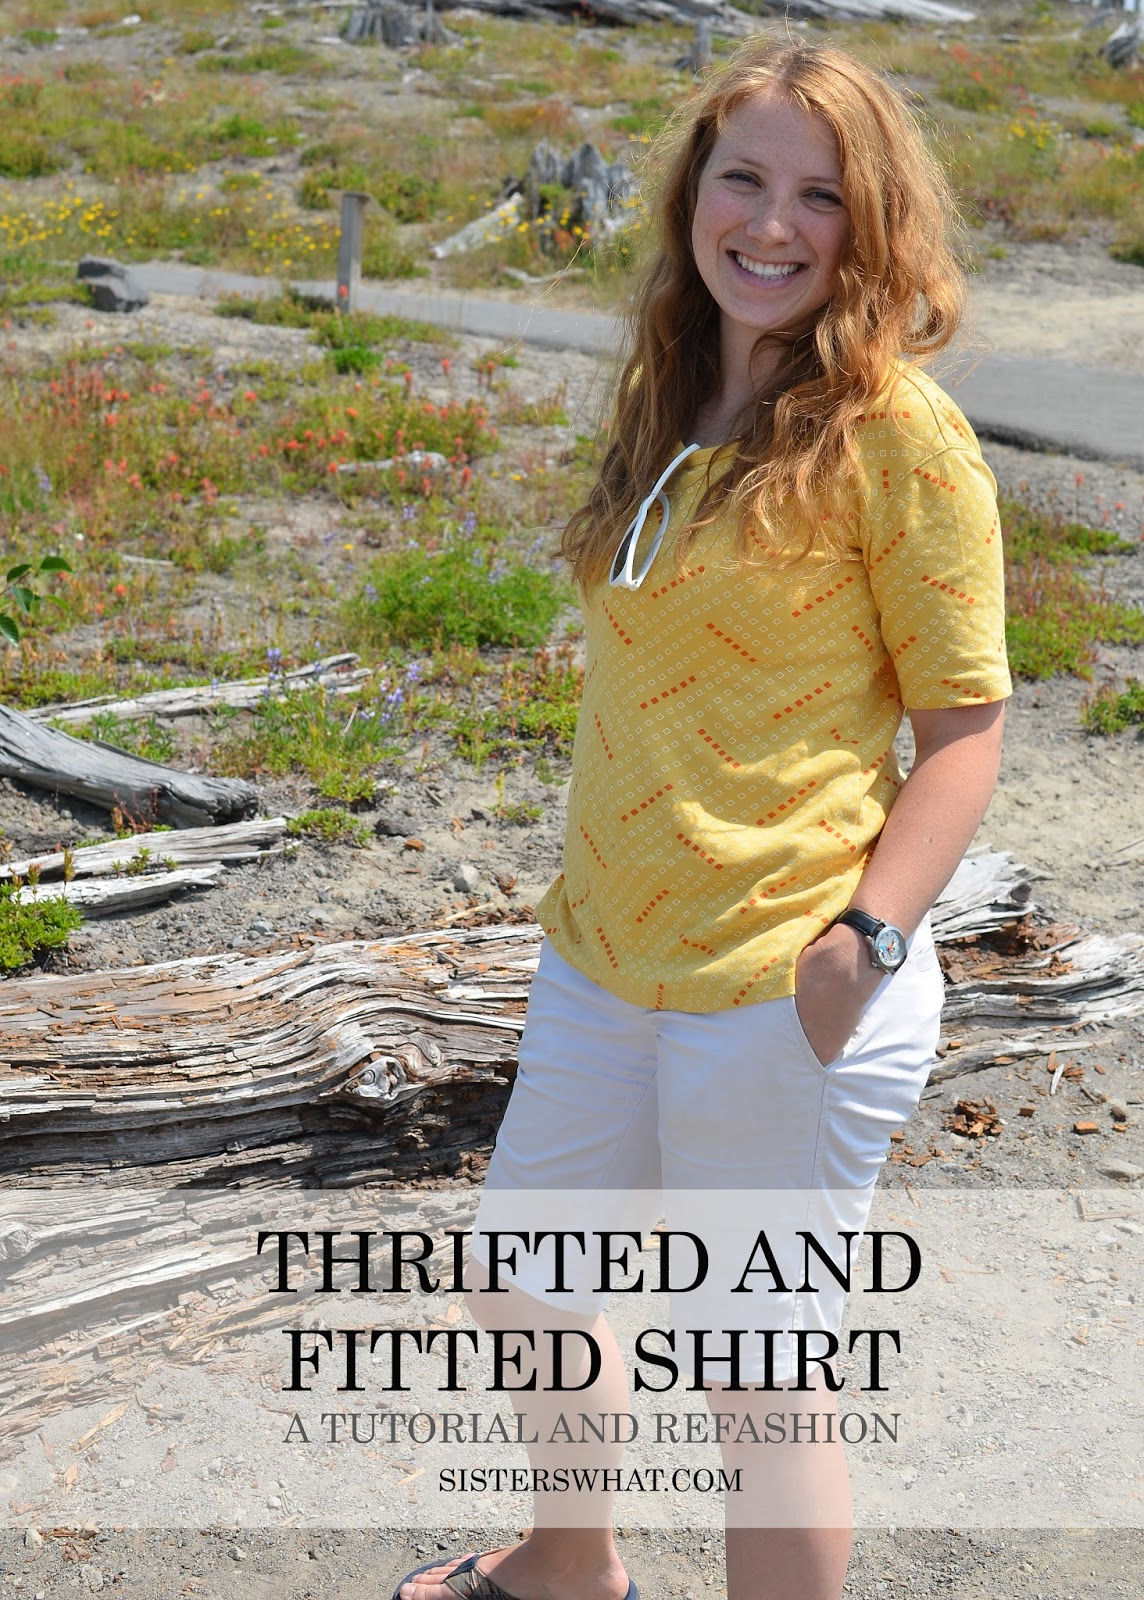 thrift for larger size shirts and refit it to fit you